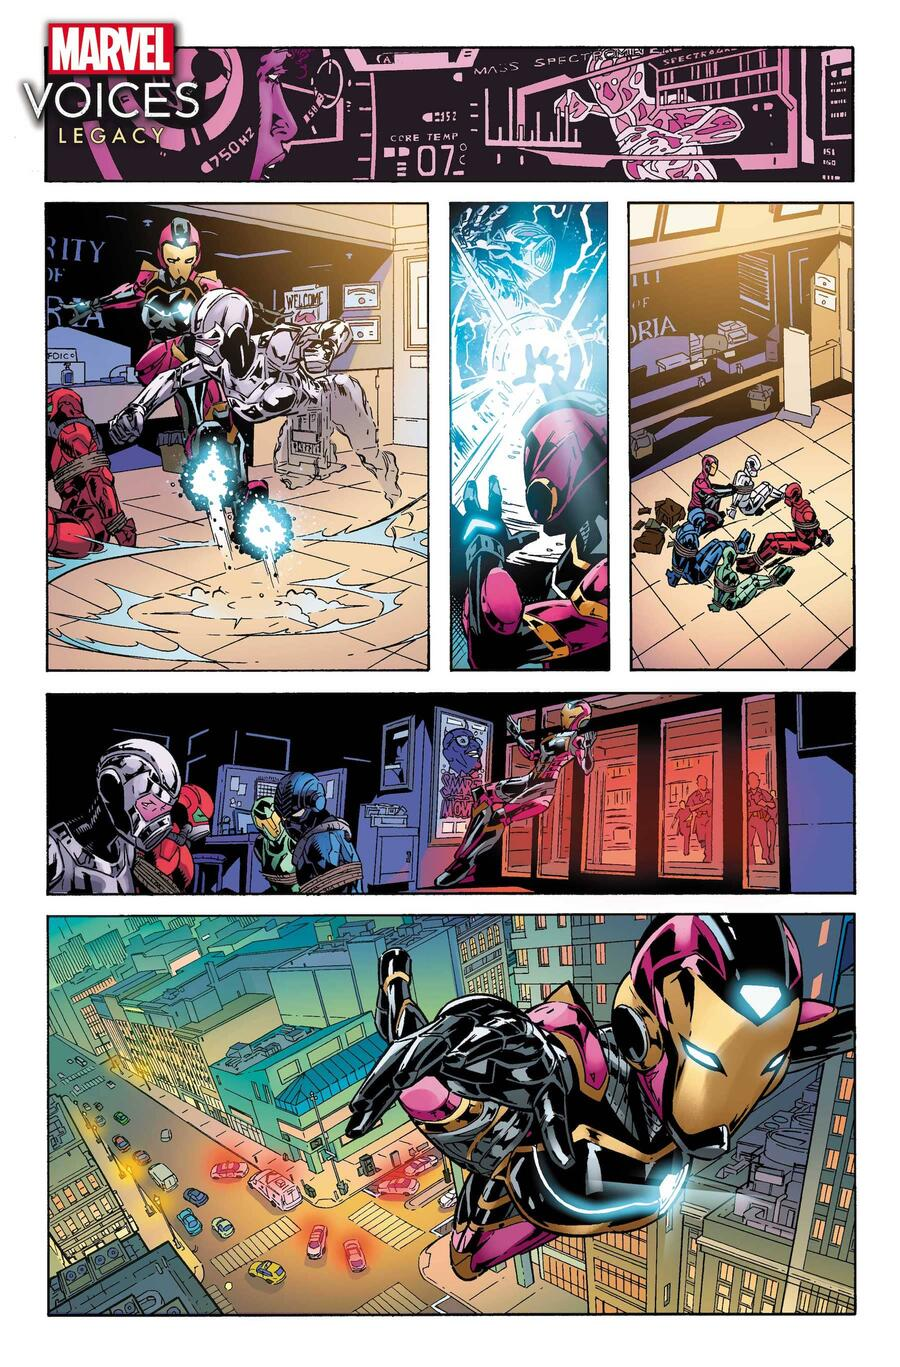 MARVEL'S VOICES: LEGACY #1 preview art by Chris Allen, colors by Rachelle Rosenberg